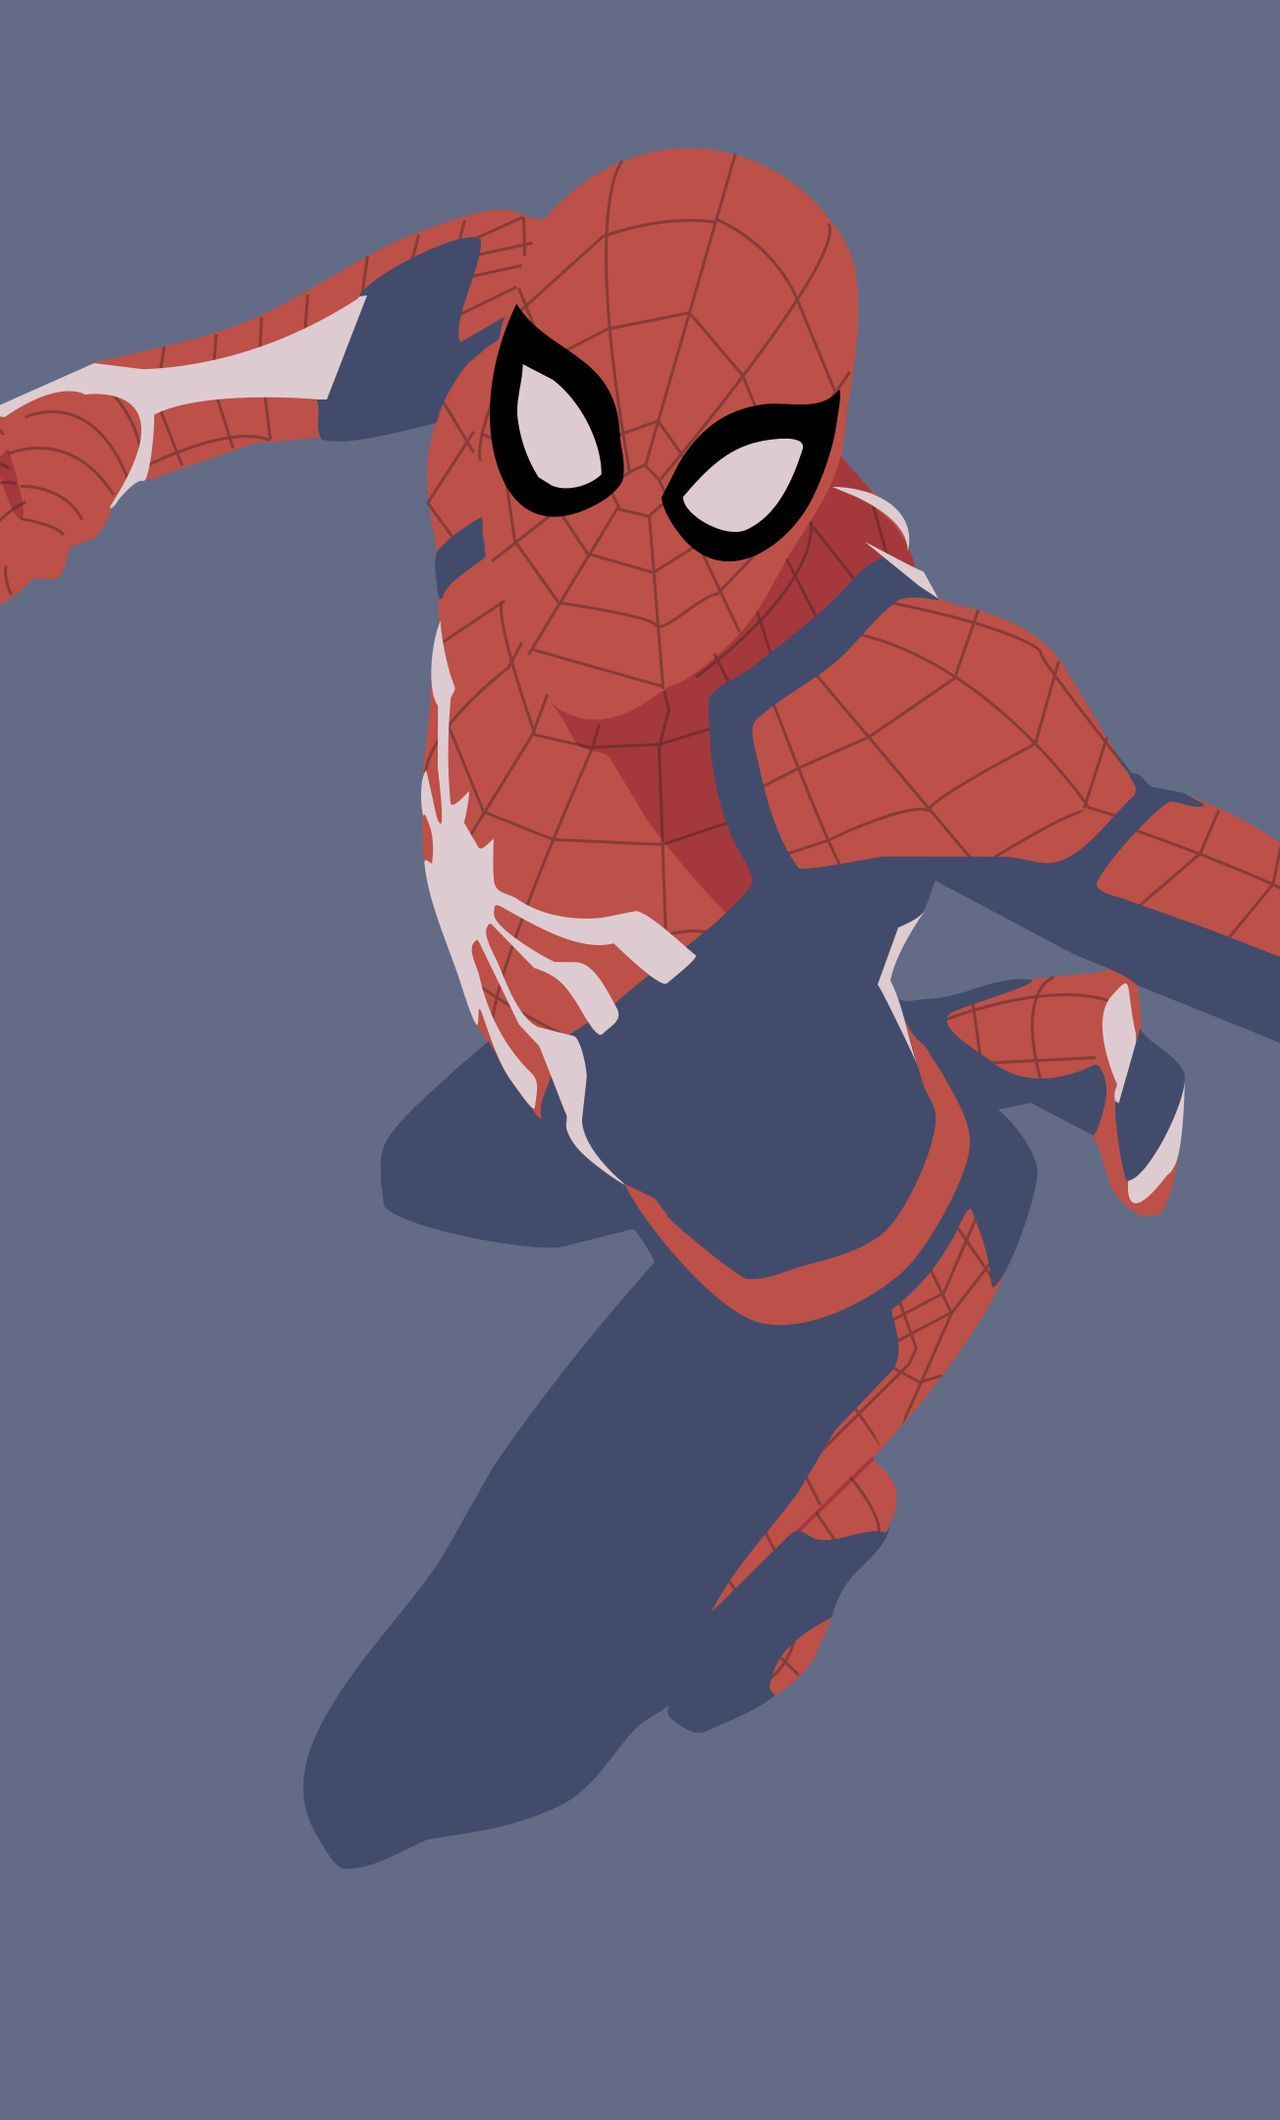 PS4 Spider-Man Phone Wallpapers - Top Free PS4 Spider-Man ...